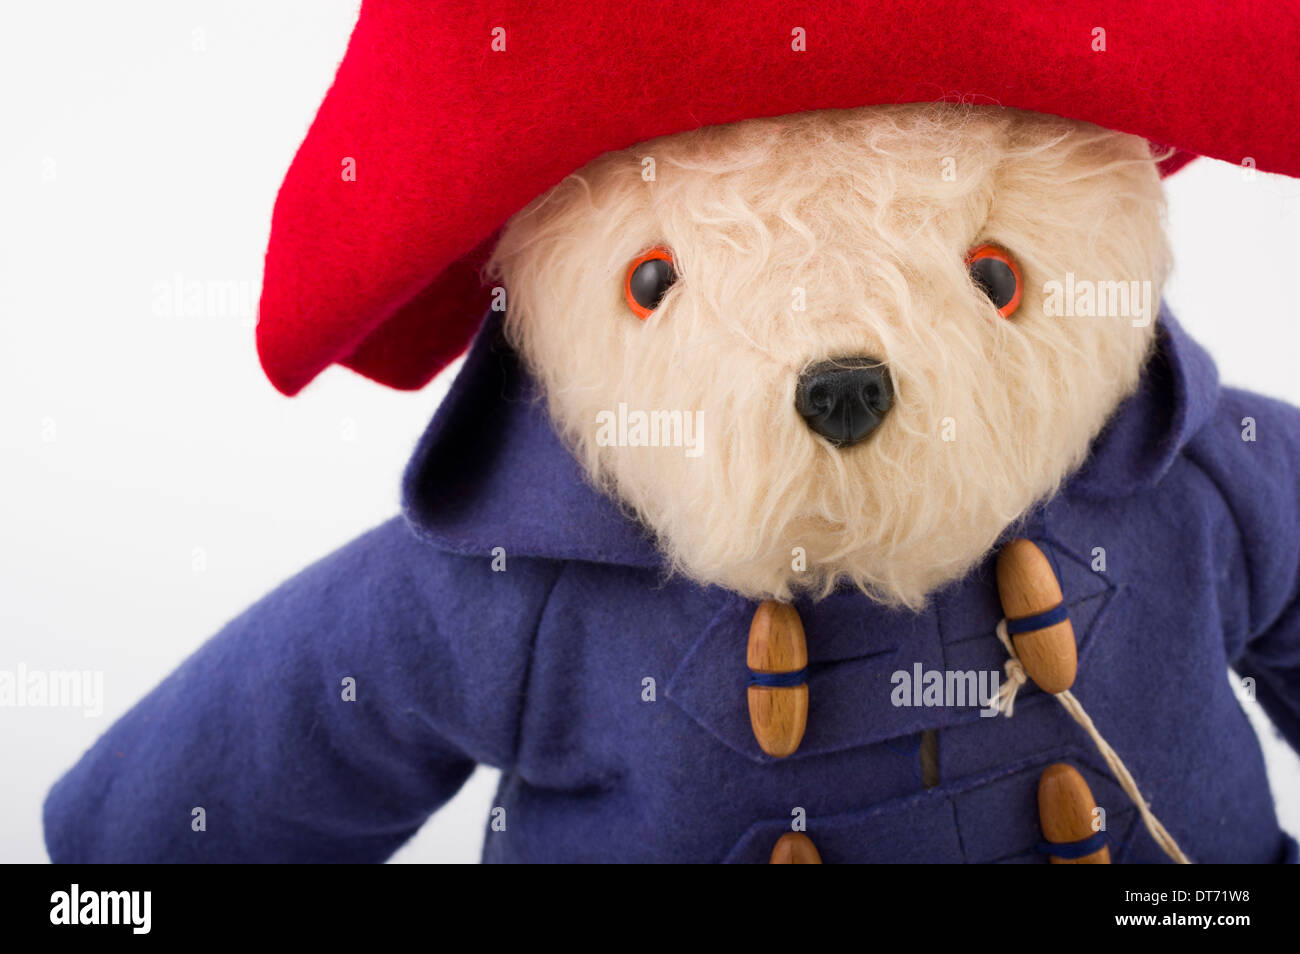 Gabrielle Designs Paddington Bear Iconic British Children's Toy - Stock Image